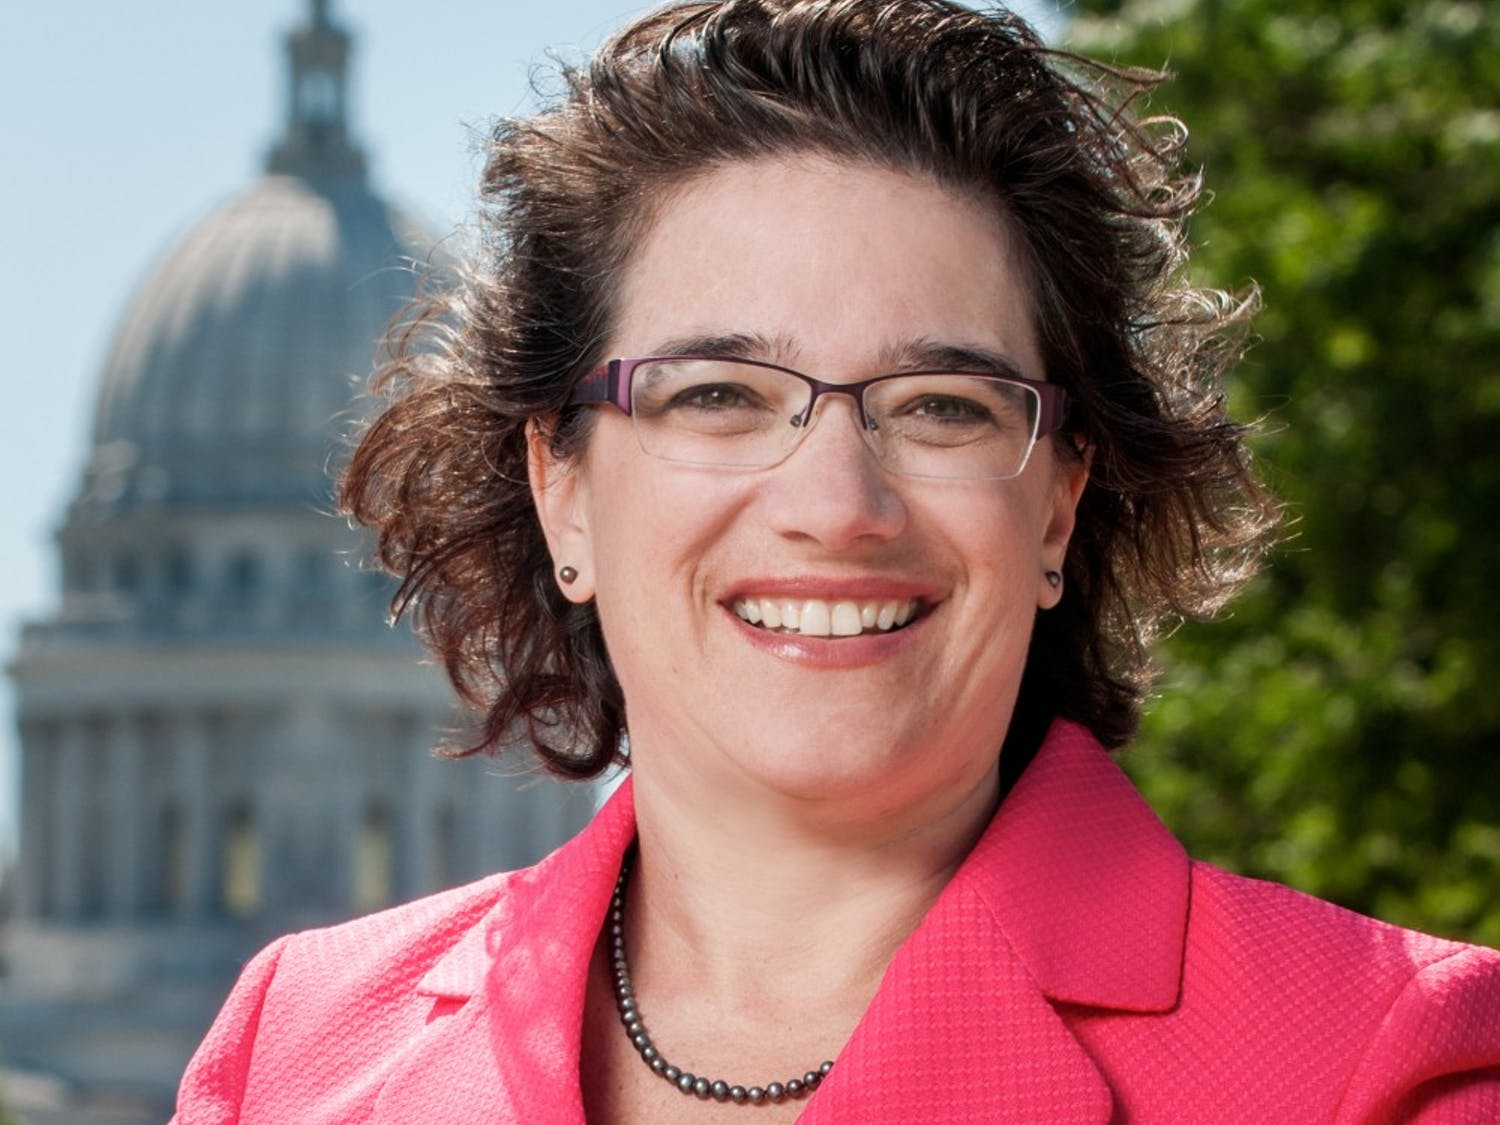 State Rep. Melissa Sargent, D-Madison, is calling for an increase in financial aid to help in-state students graduate debt-free.